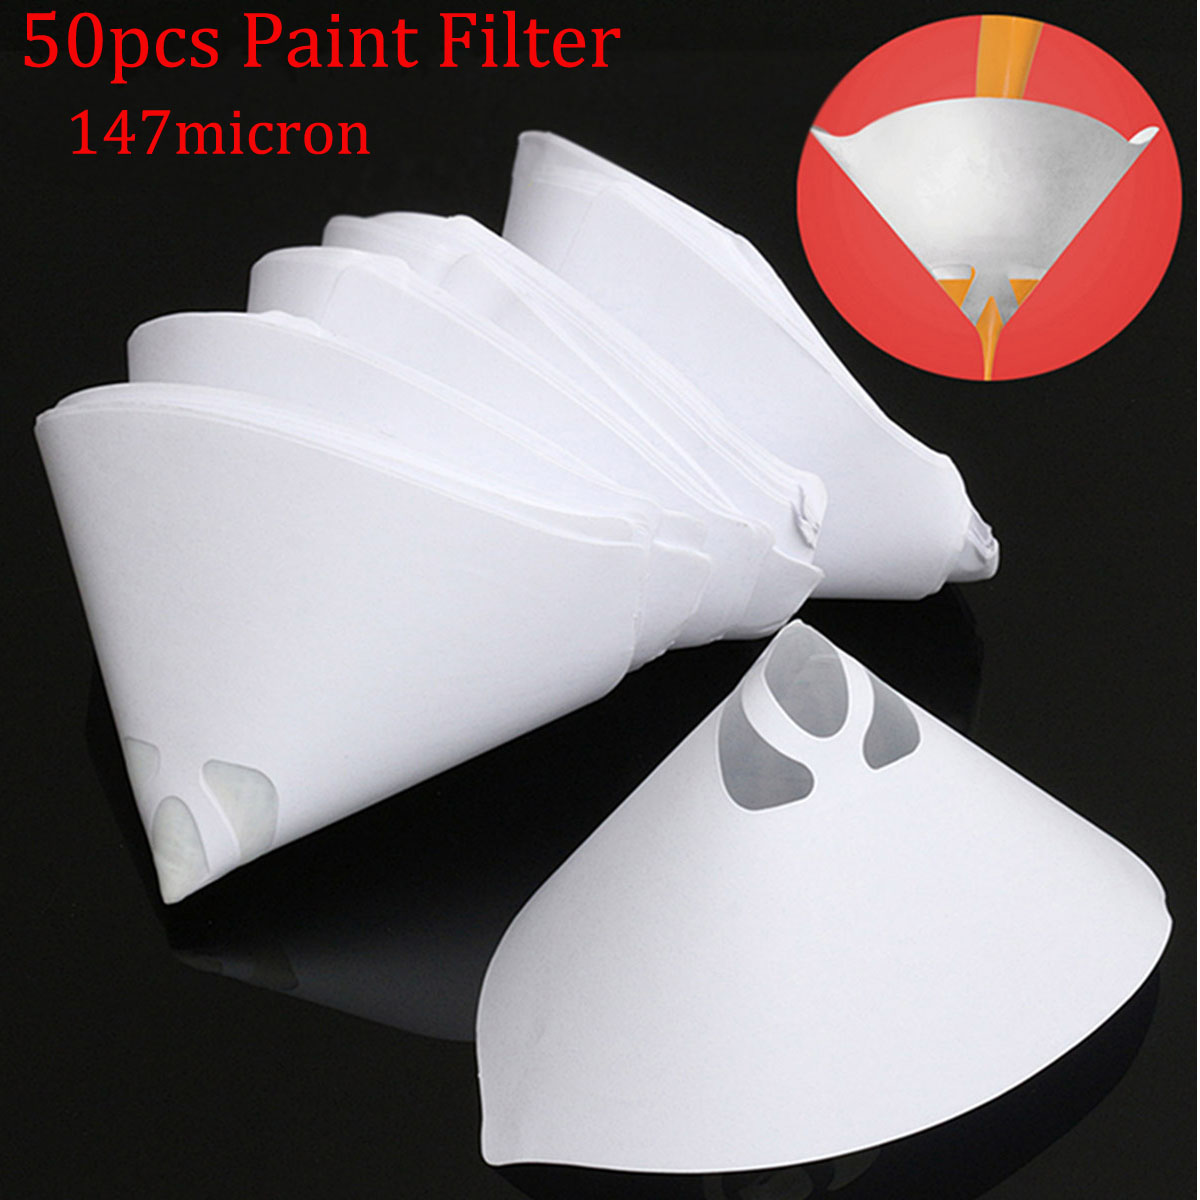 50PCS Fine Paint Cone Filter 100 Micron Strainers Nylon Mesh Conical Paper Net